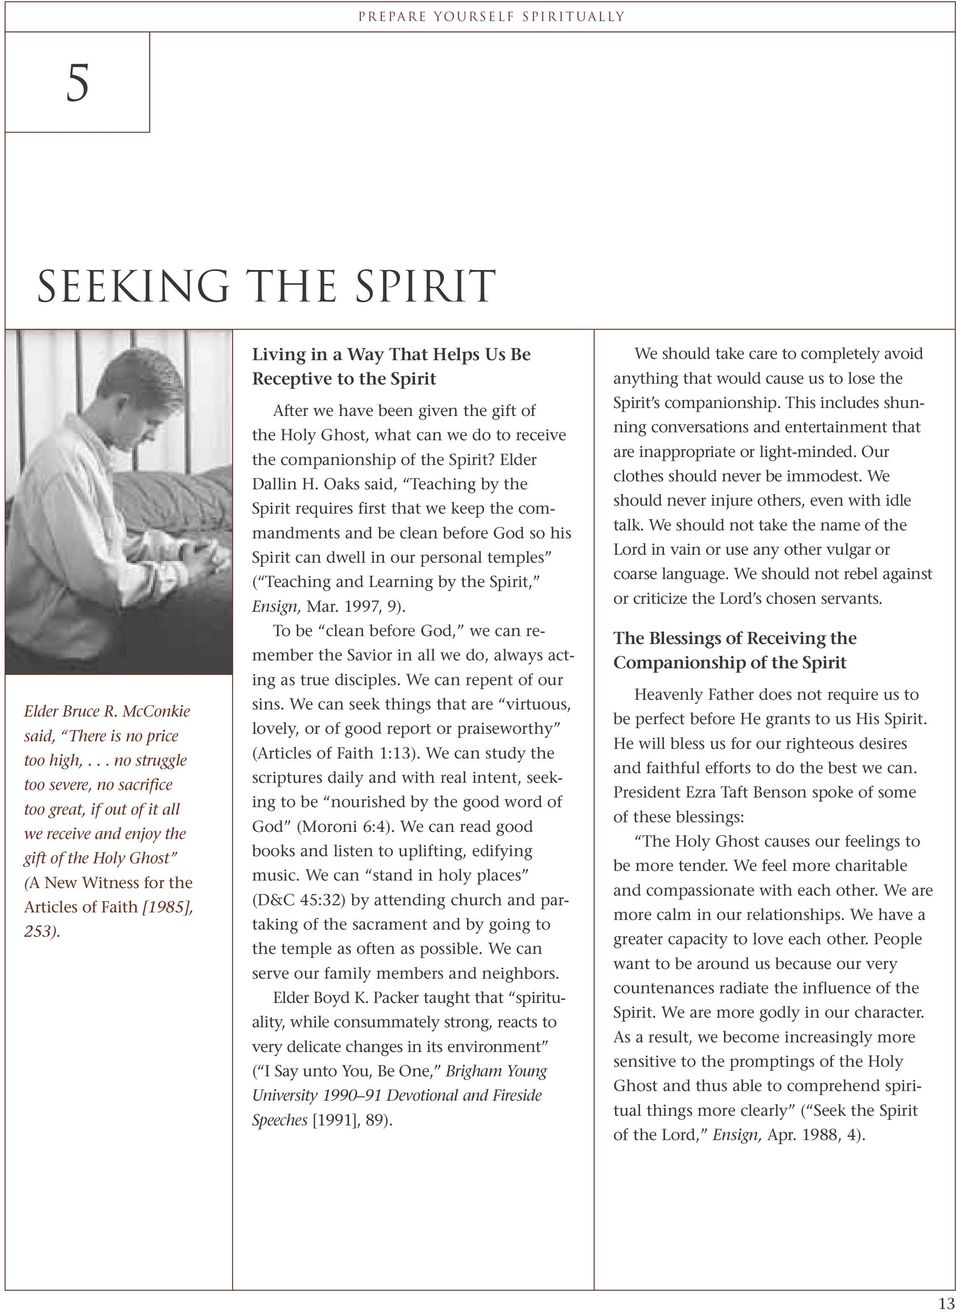 Living in a Way That Helps Us Be Receptive to the Spirit After we have been given the gift of the Holy Ghost, what can we do to receive the companionship of the Spirit? Elder Dallin H.